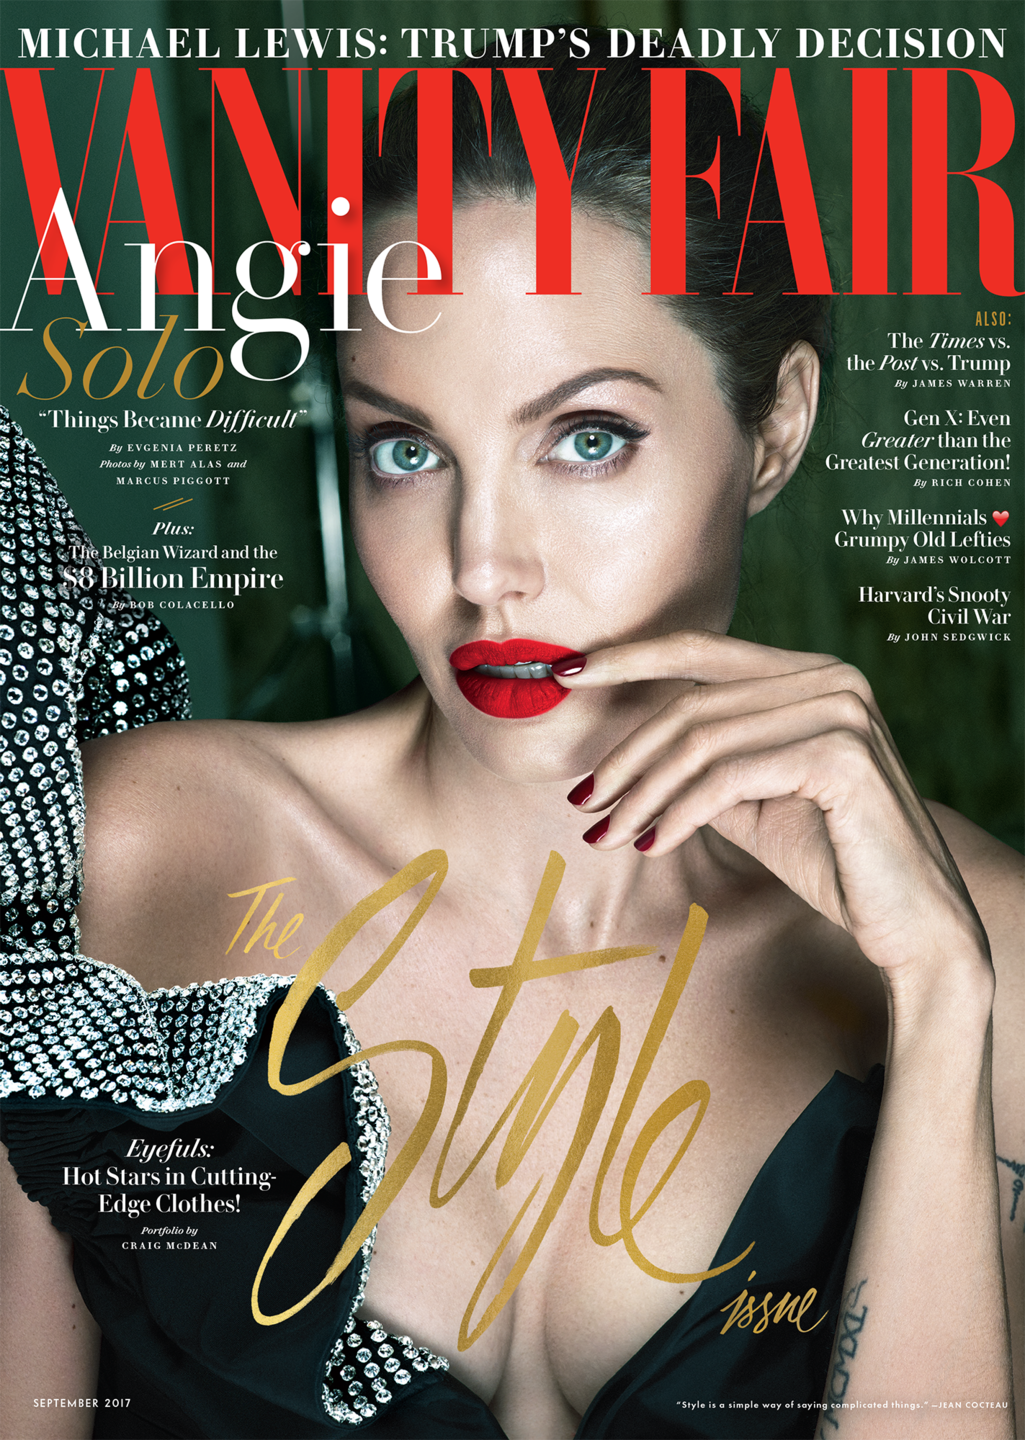 angelina jolie 0917 Vf cover